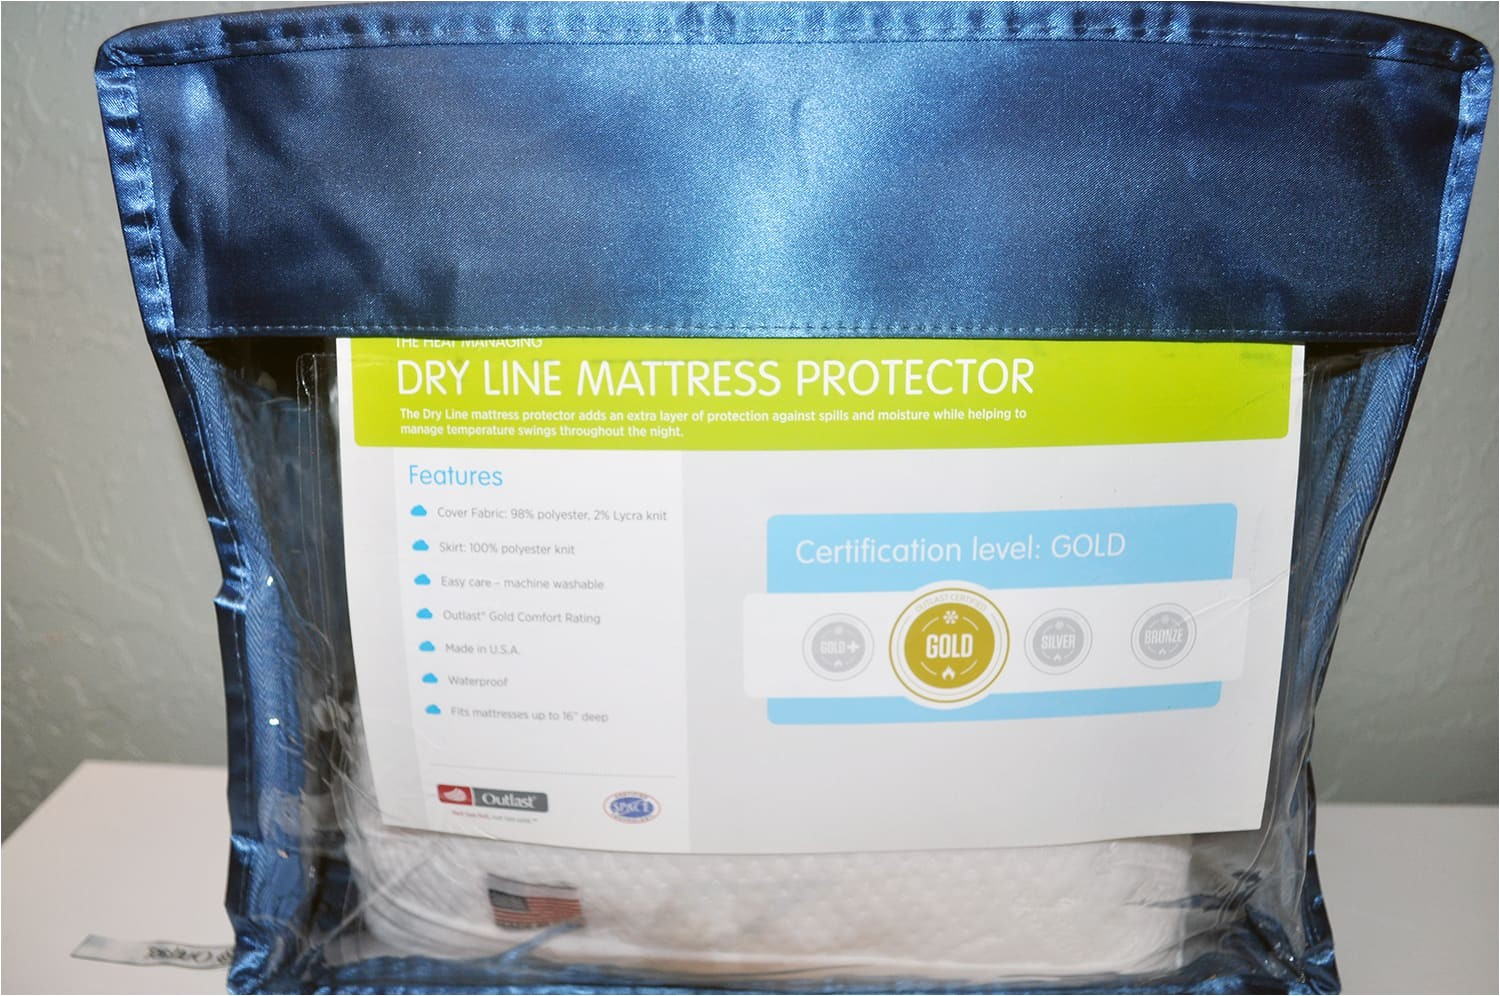 slumber cloud dryline mattress protector review